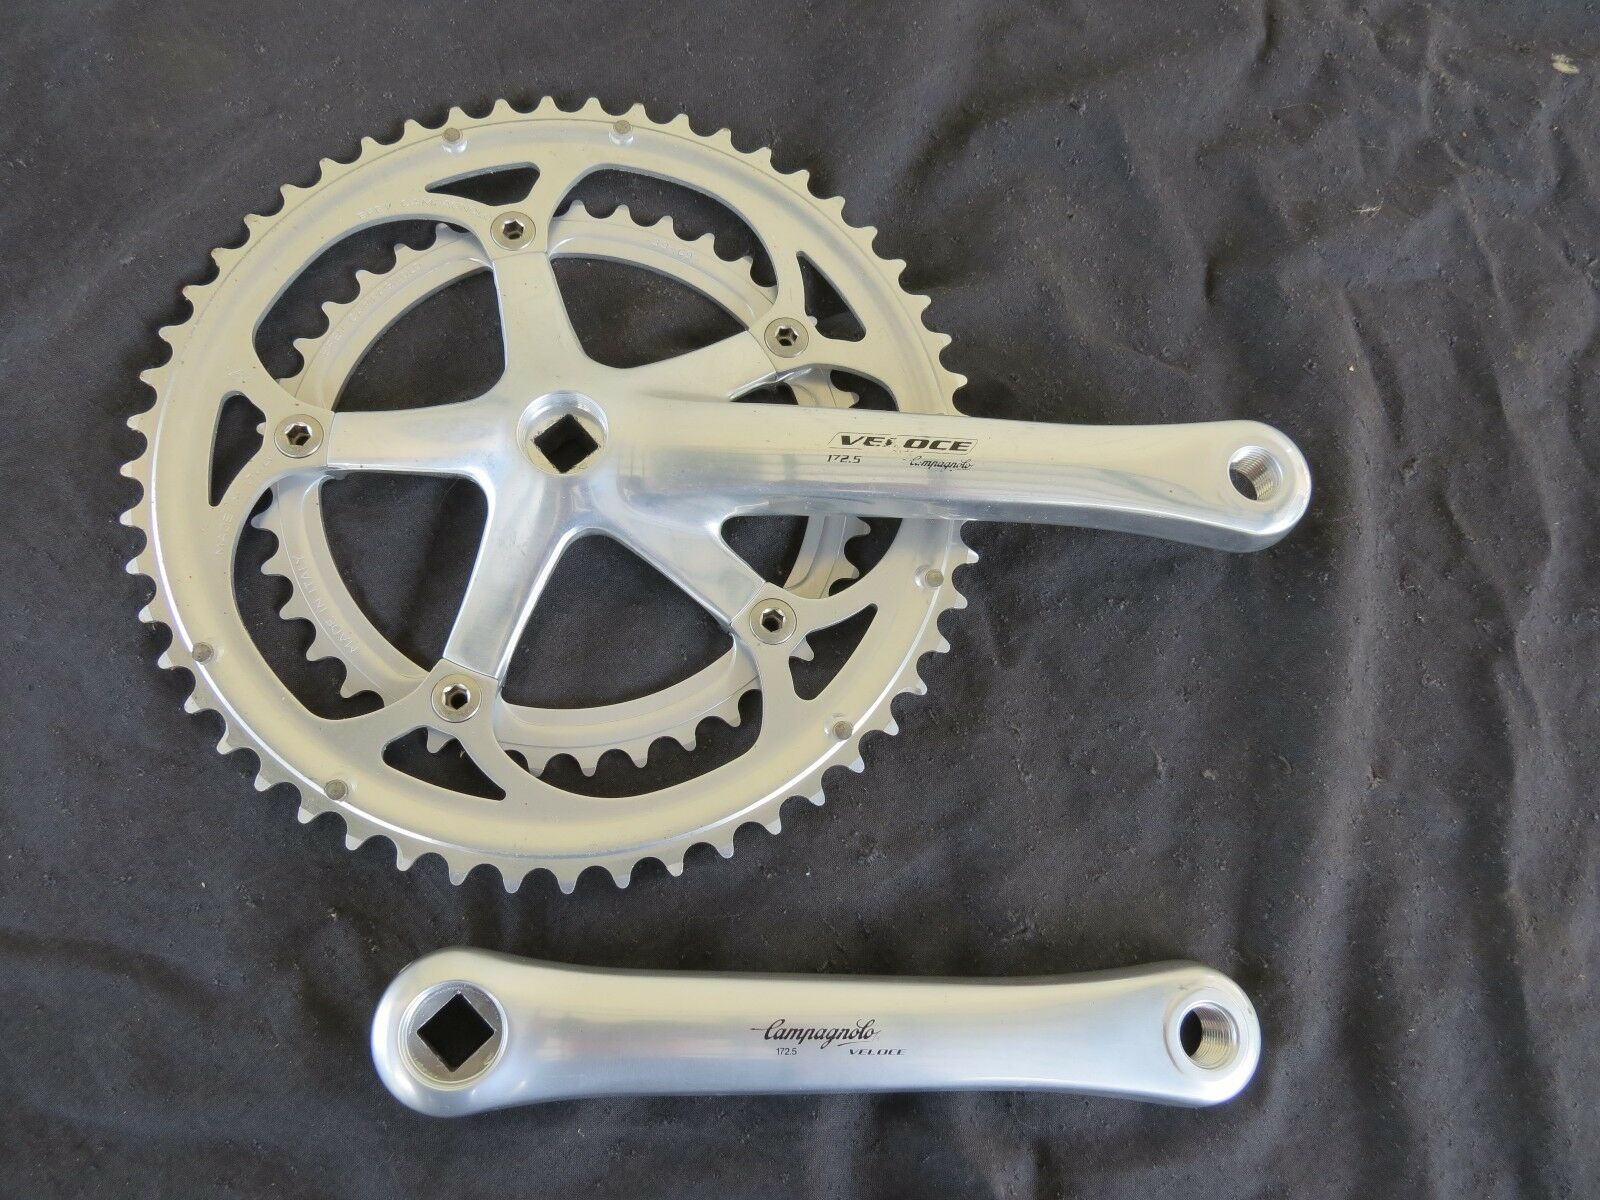 172.5  CAMPAGNOLO 9 SPEED 39 53  VELOCE CRANK SET  BICYCLE TOURING